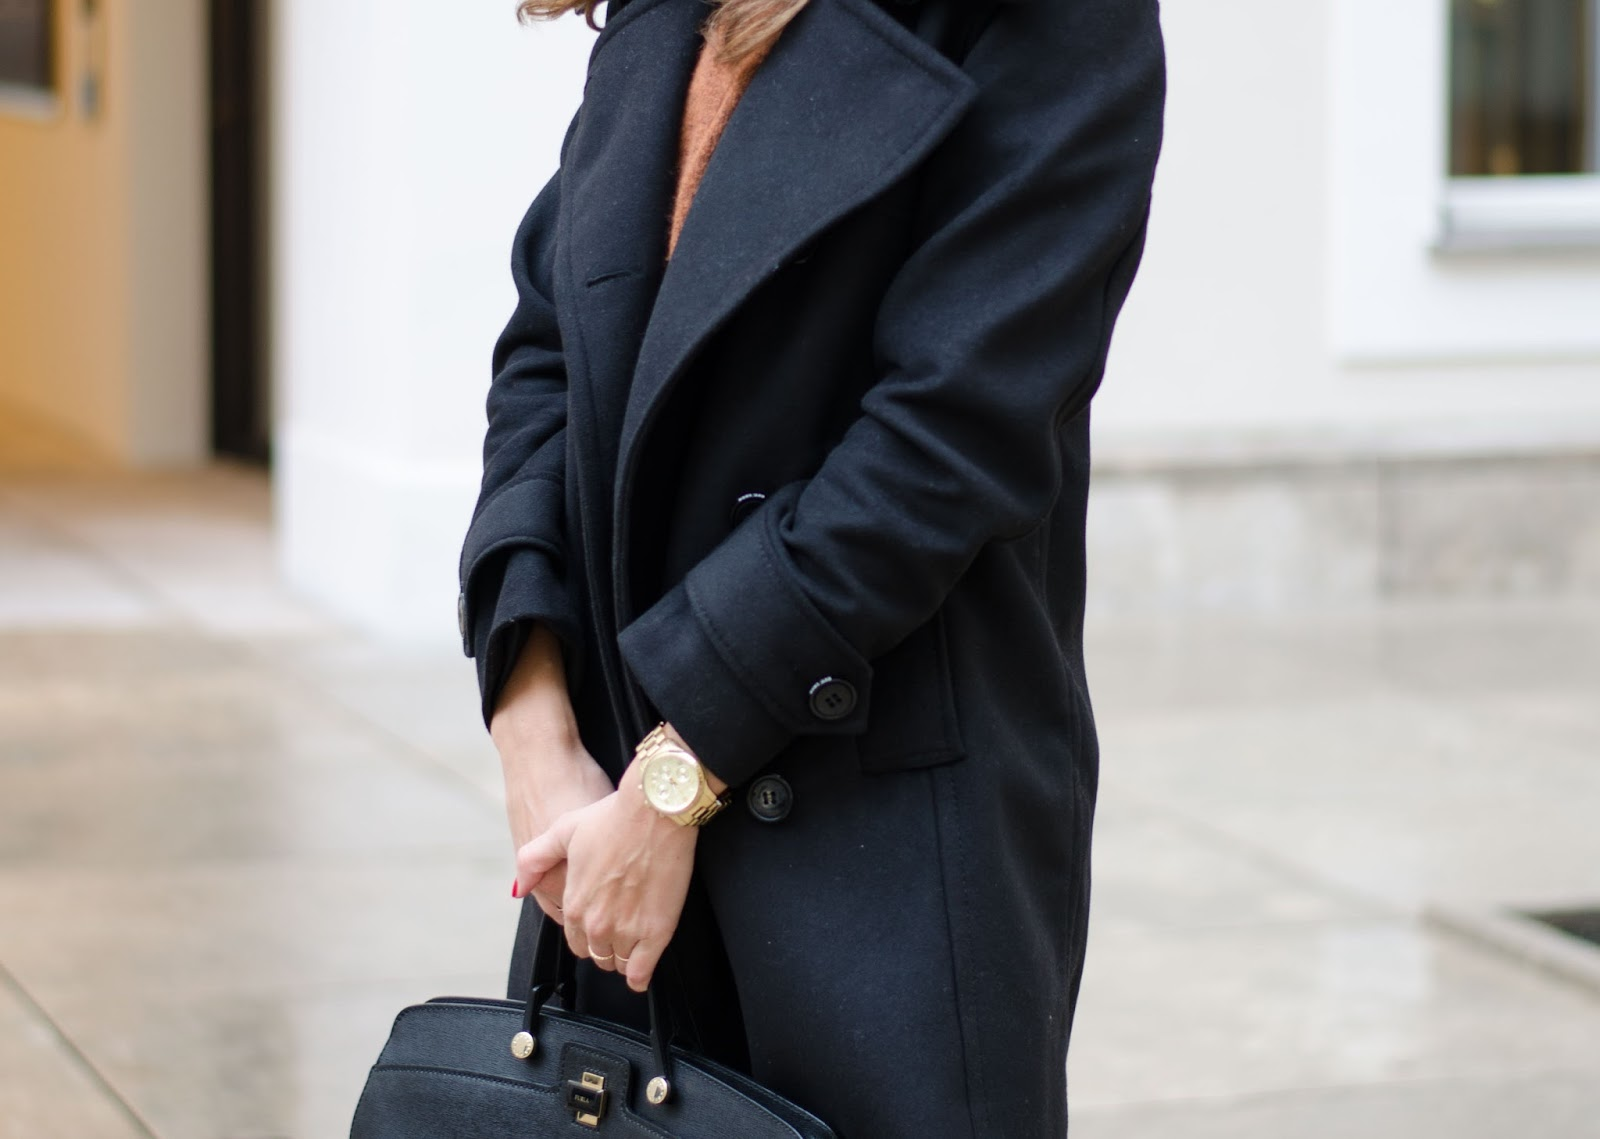 kristjaana mere lindex black pea coat fall outfit look fashion